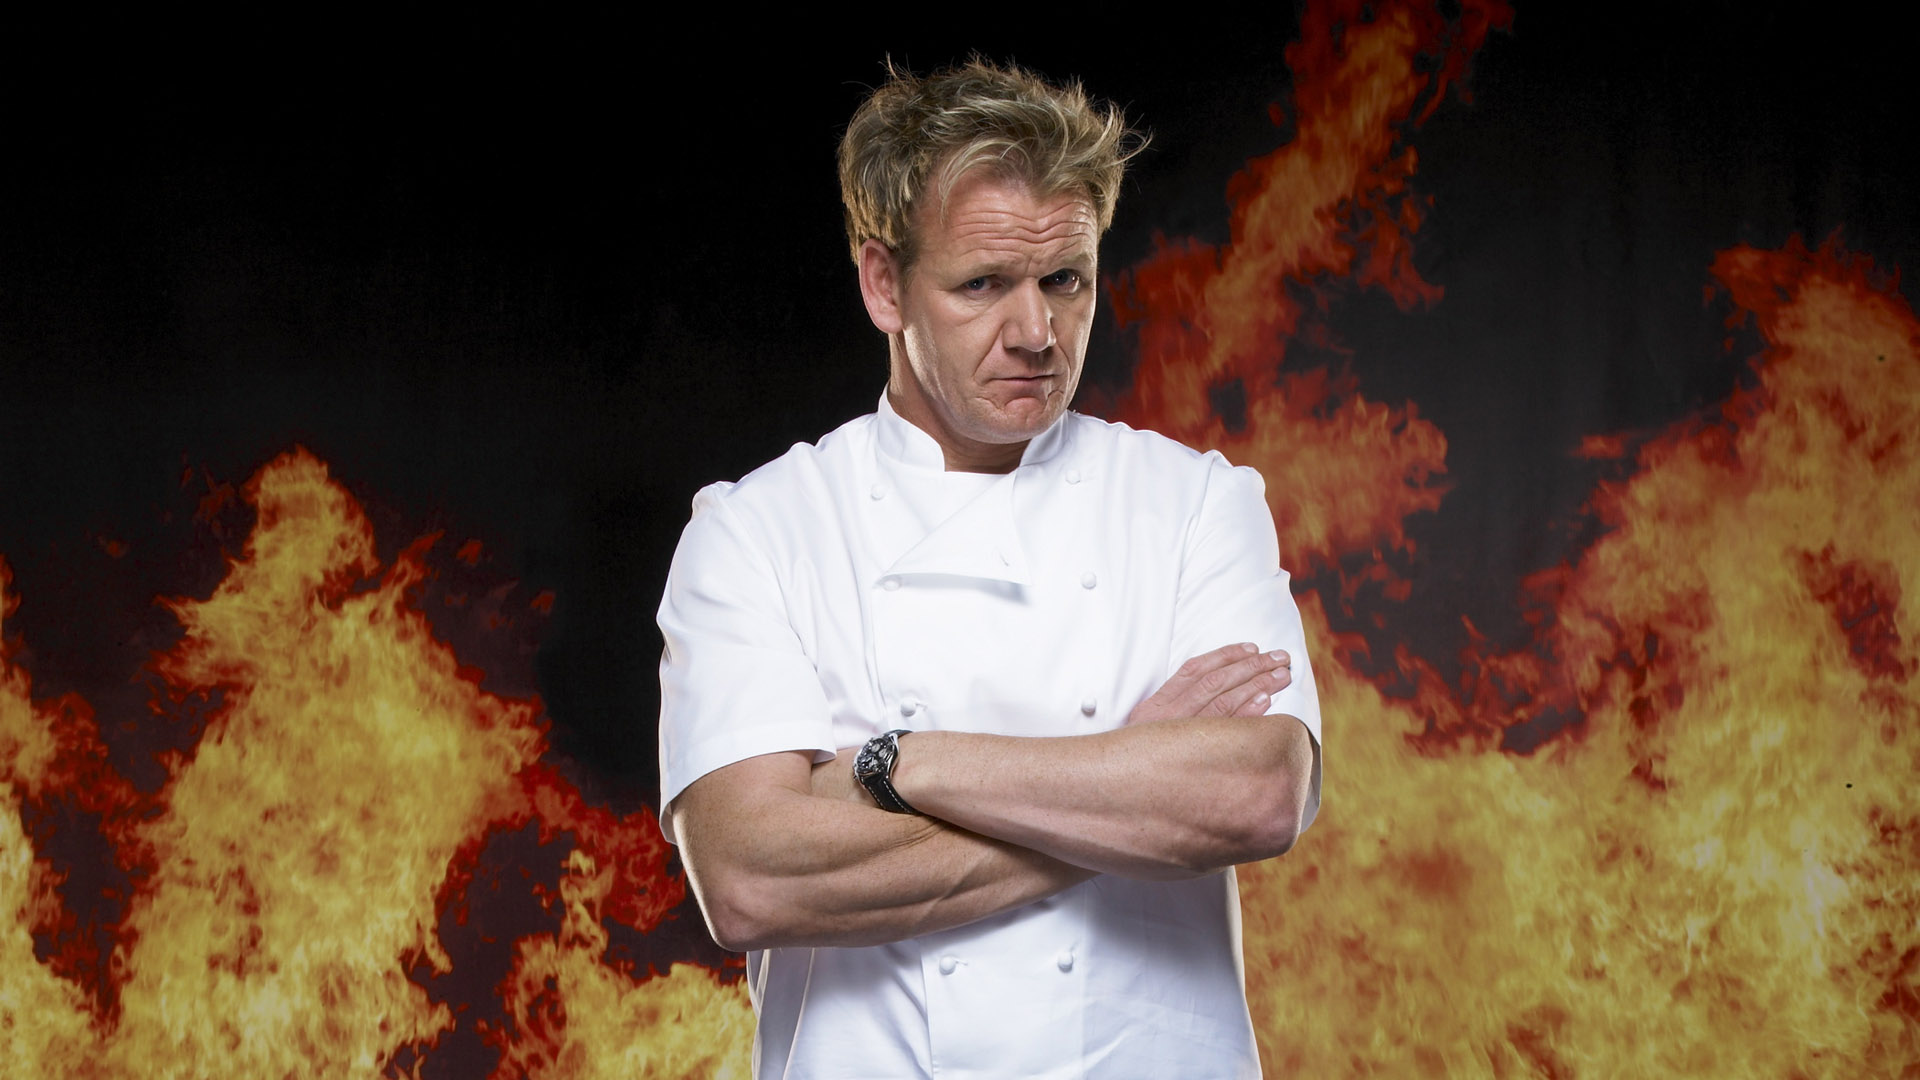 Hells Kitchen Release Date 2018 Keep Track Of Premiere Return Dates Of Your Favorite Tv Shows